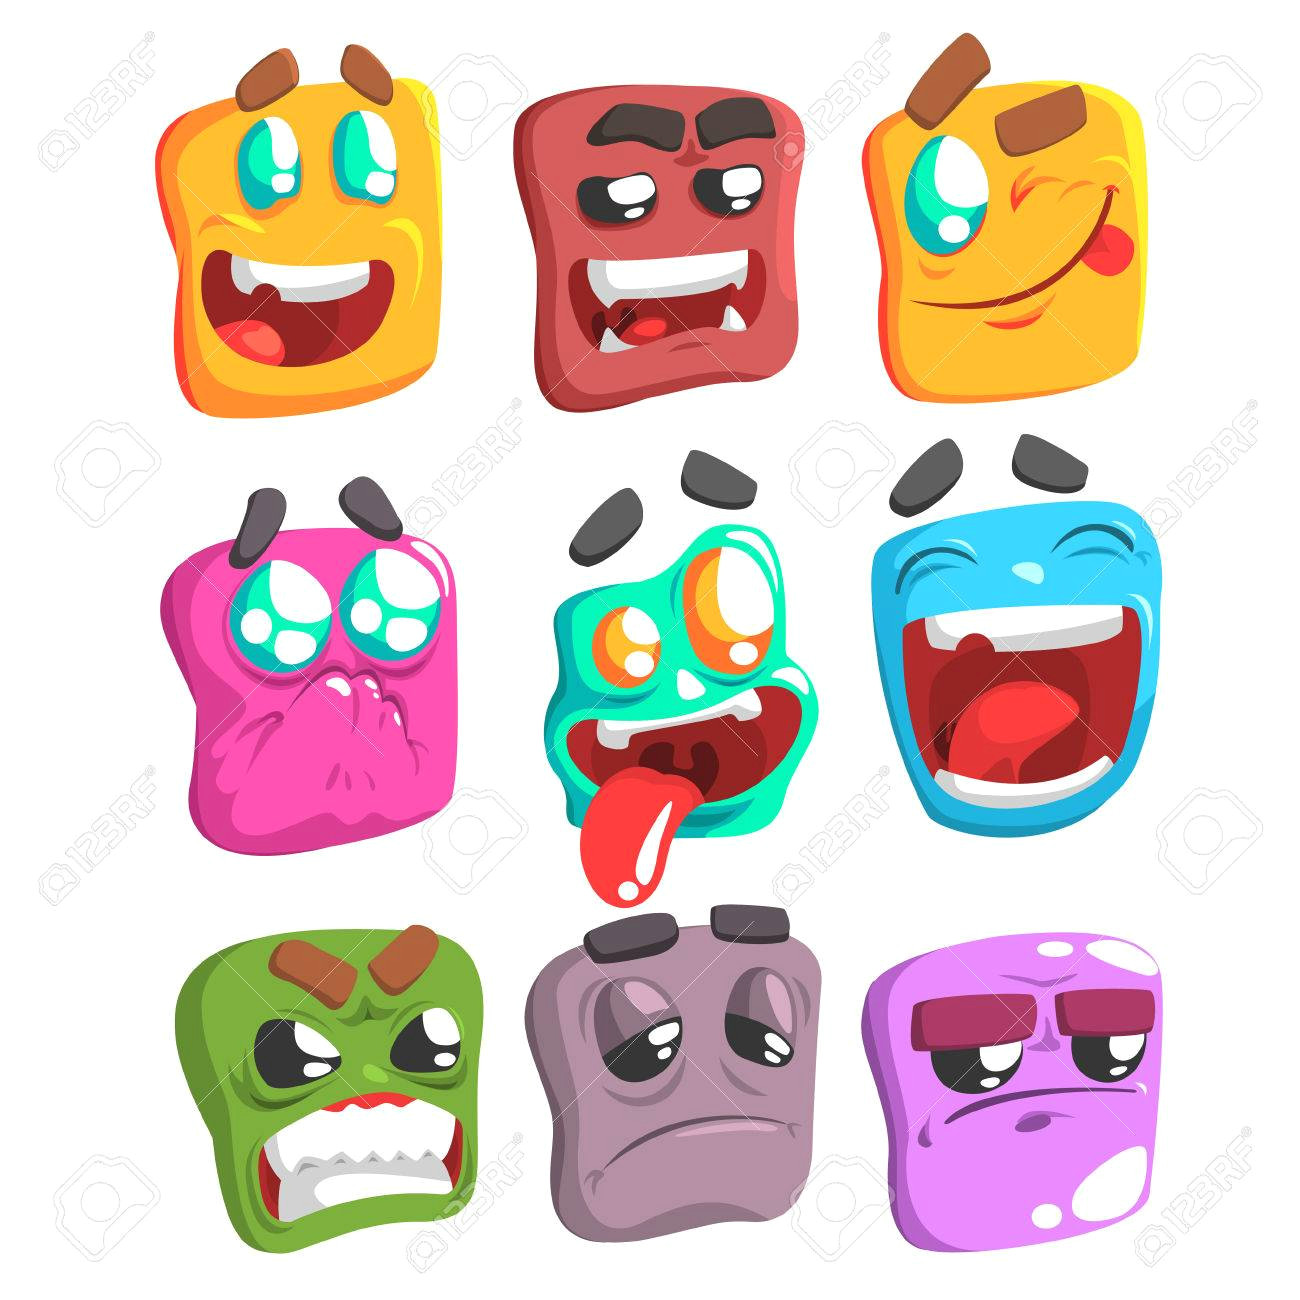 square face colorful emoji set od isolated icons on white background cartoon simple style vector